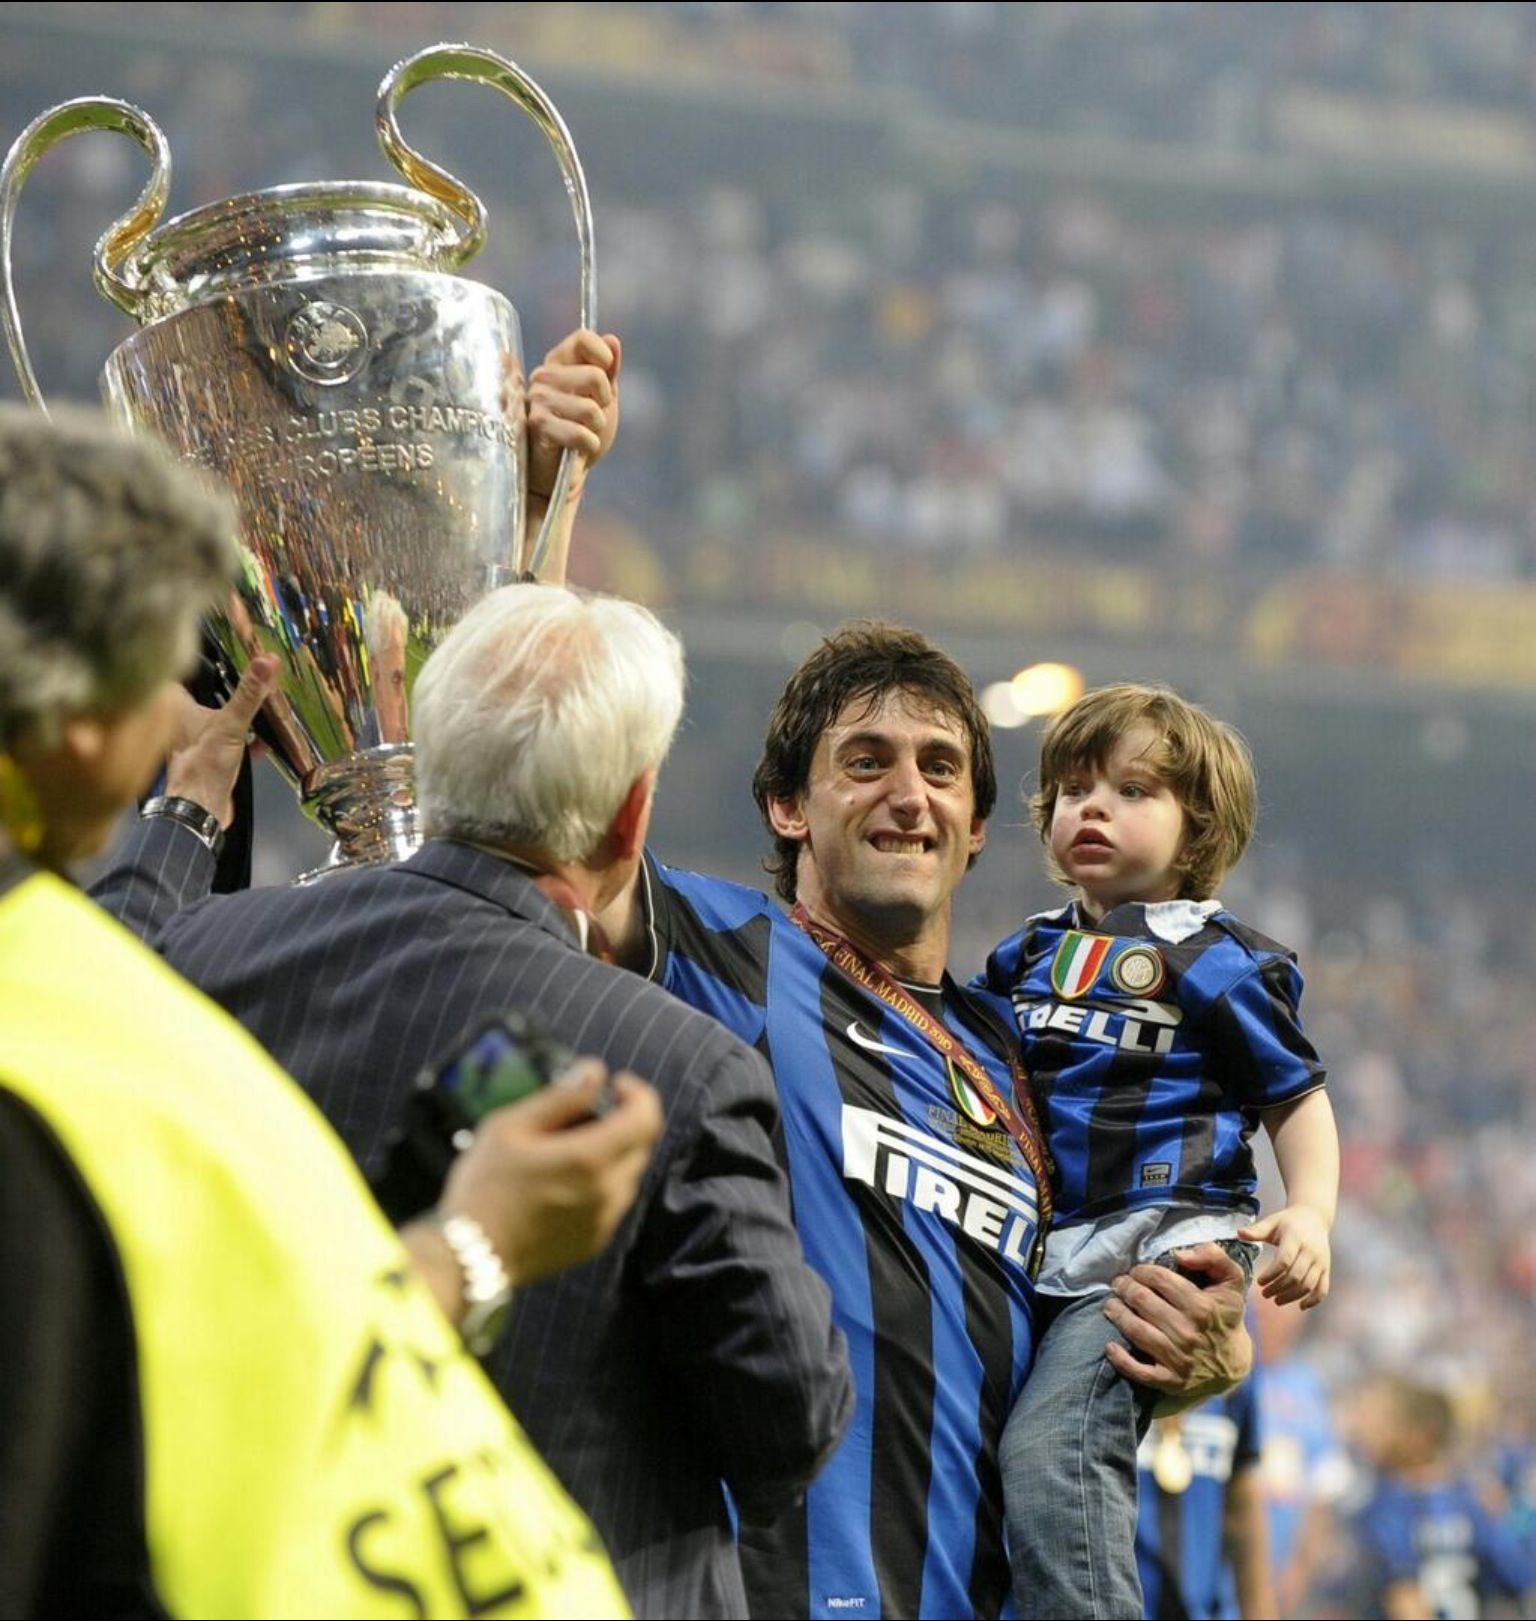 Milito and son